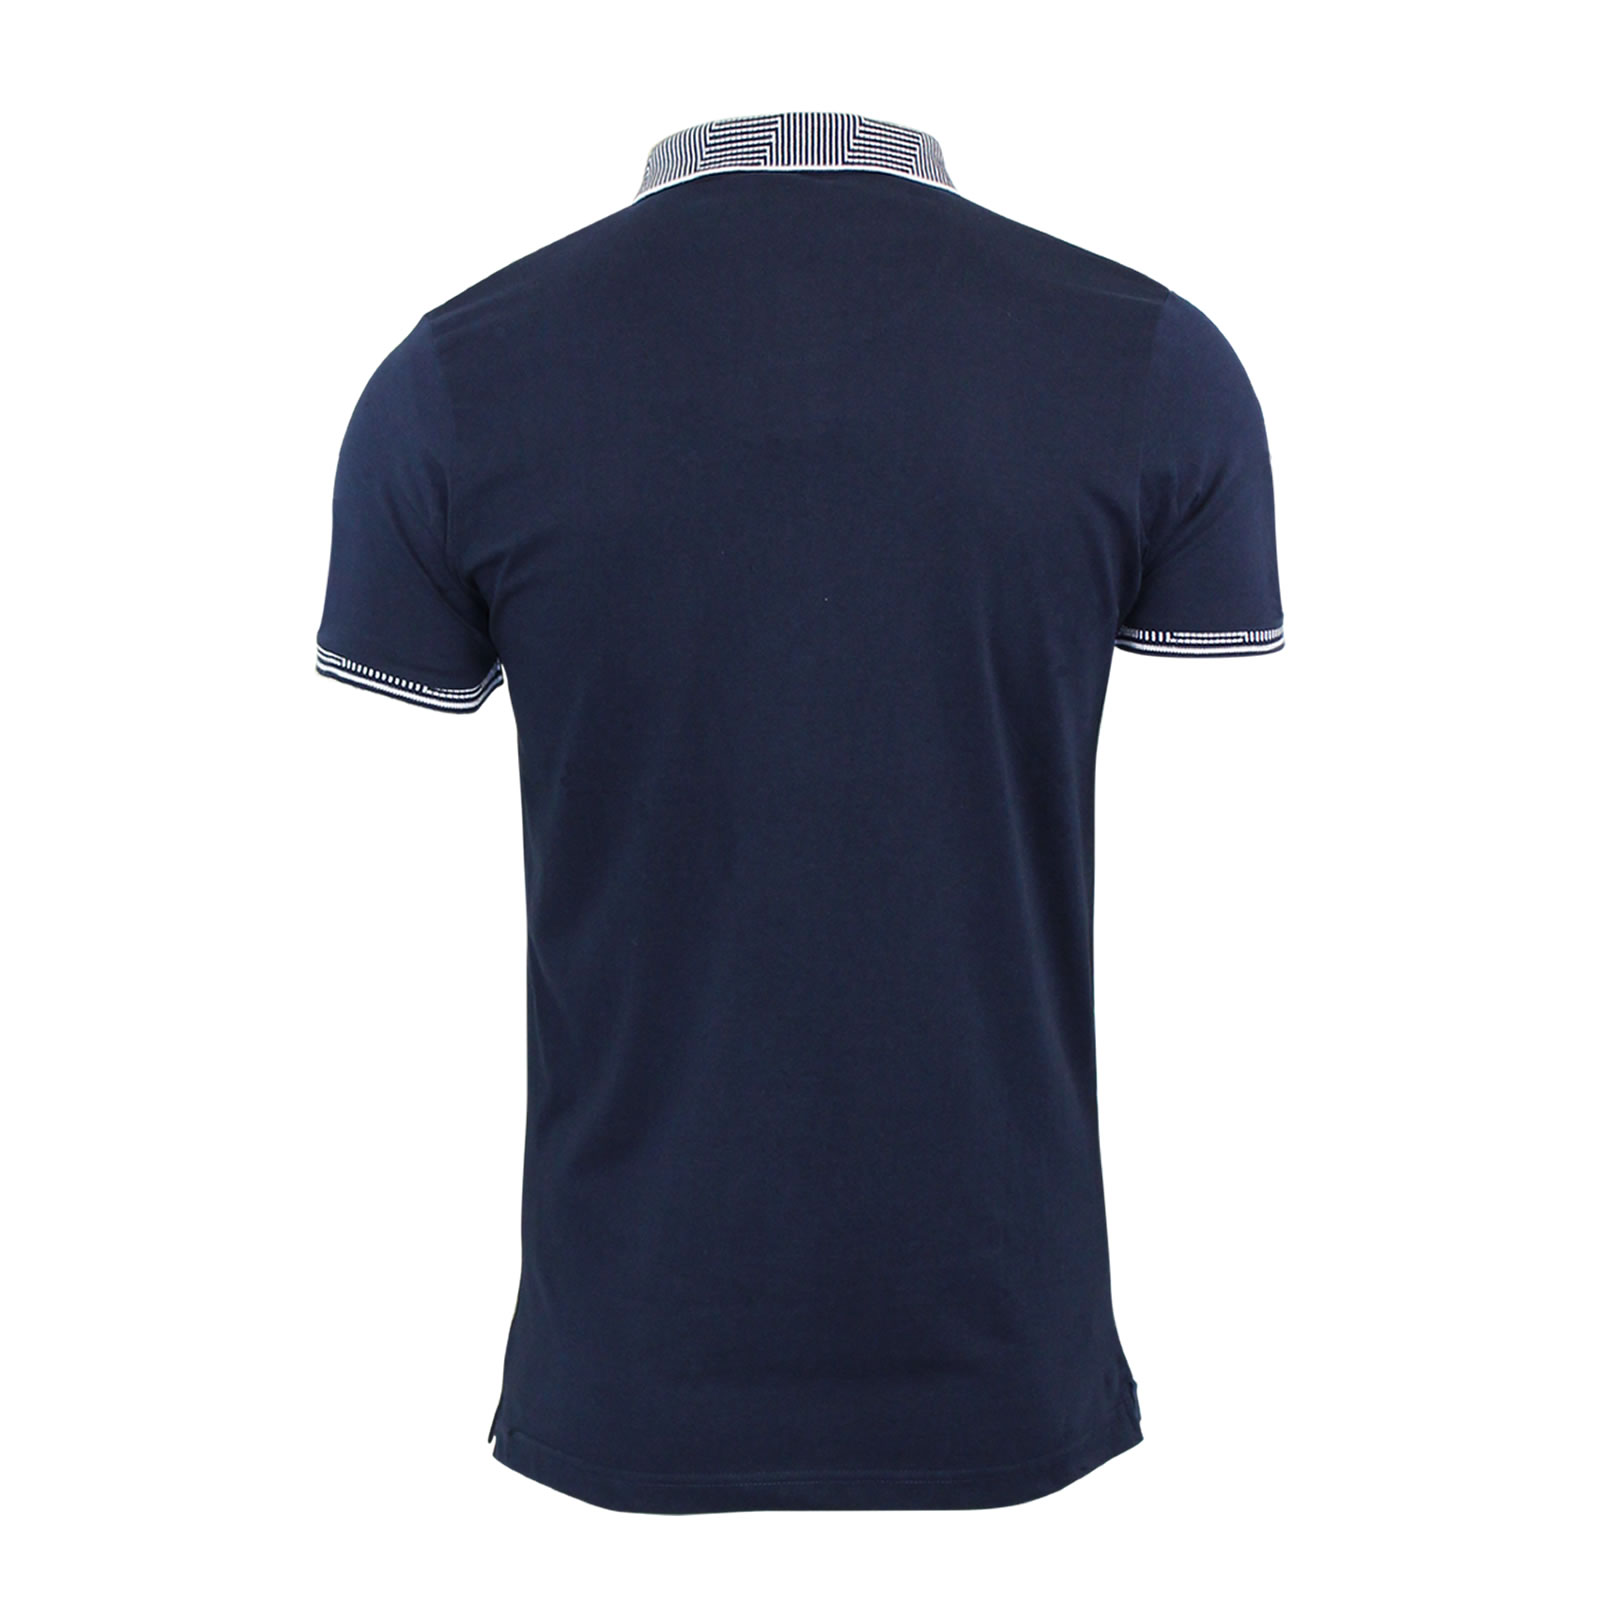 Mens-Polo-T-Shirt-Brave-Soul-Glover-Cotton-Collared-Short-Sleeve-Casual-Top thumbnail 3